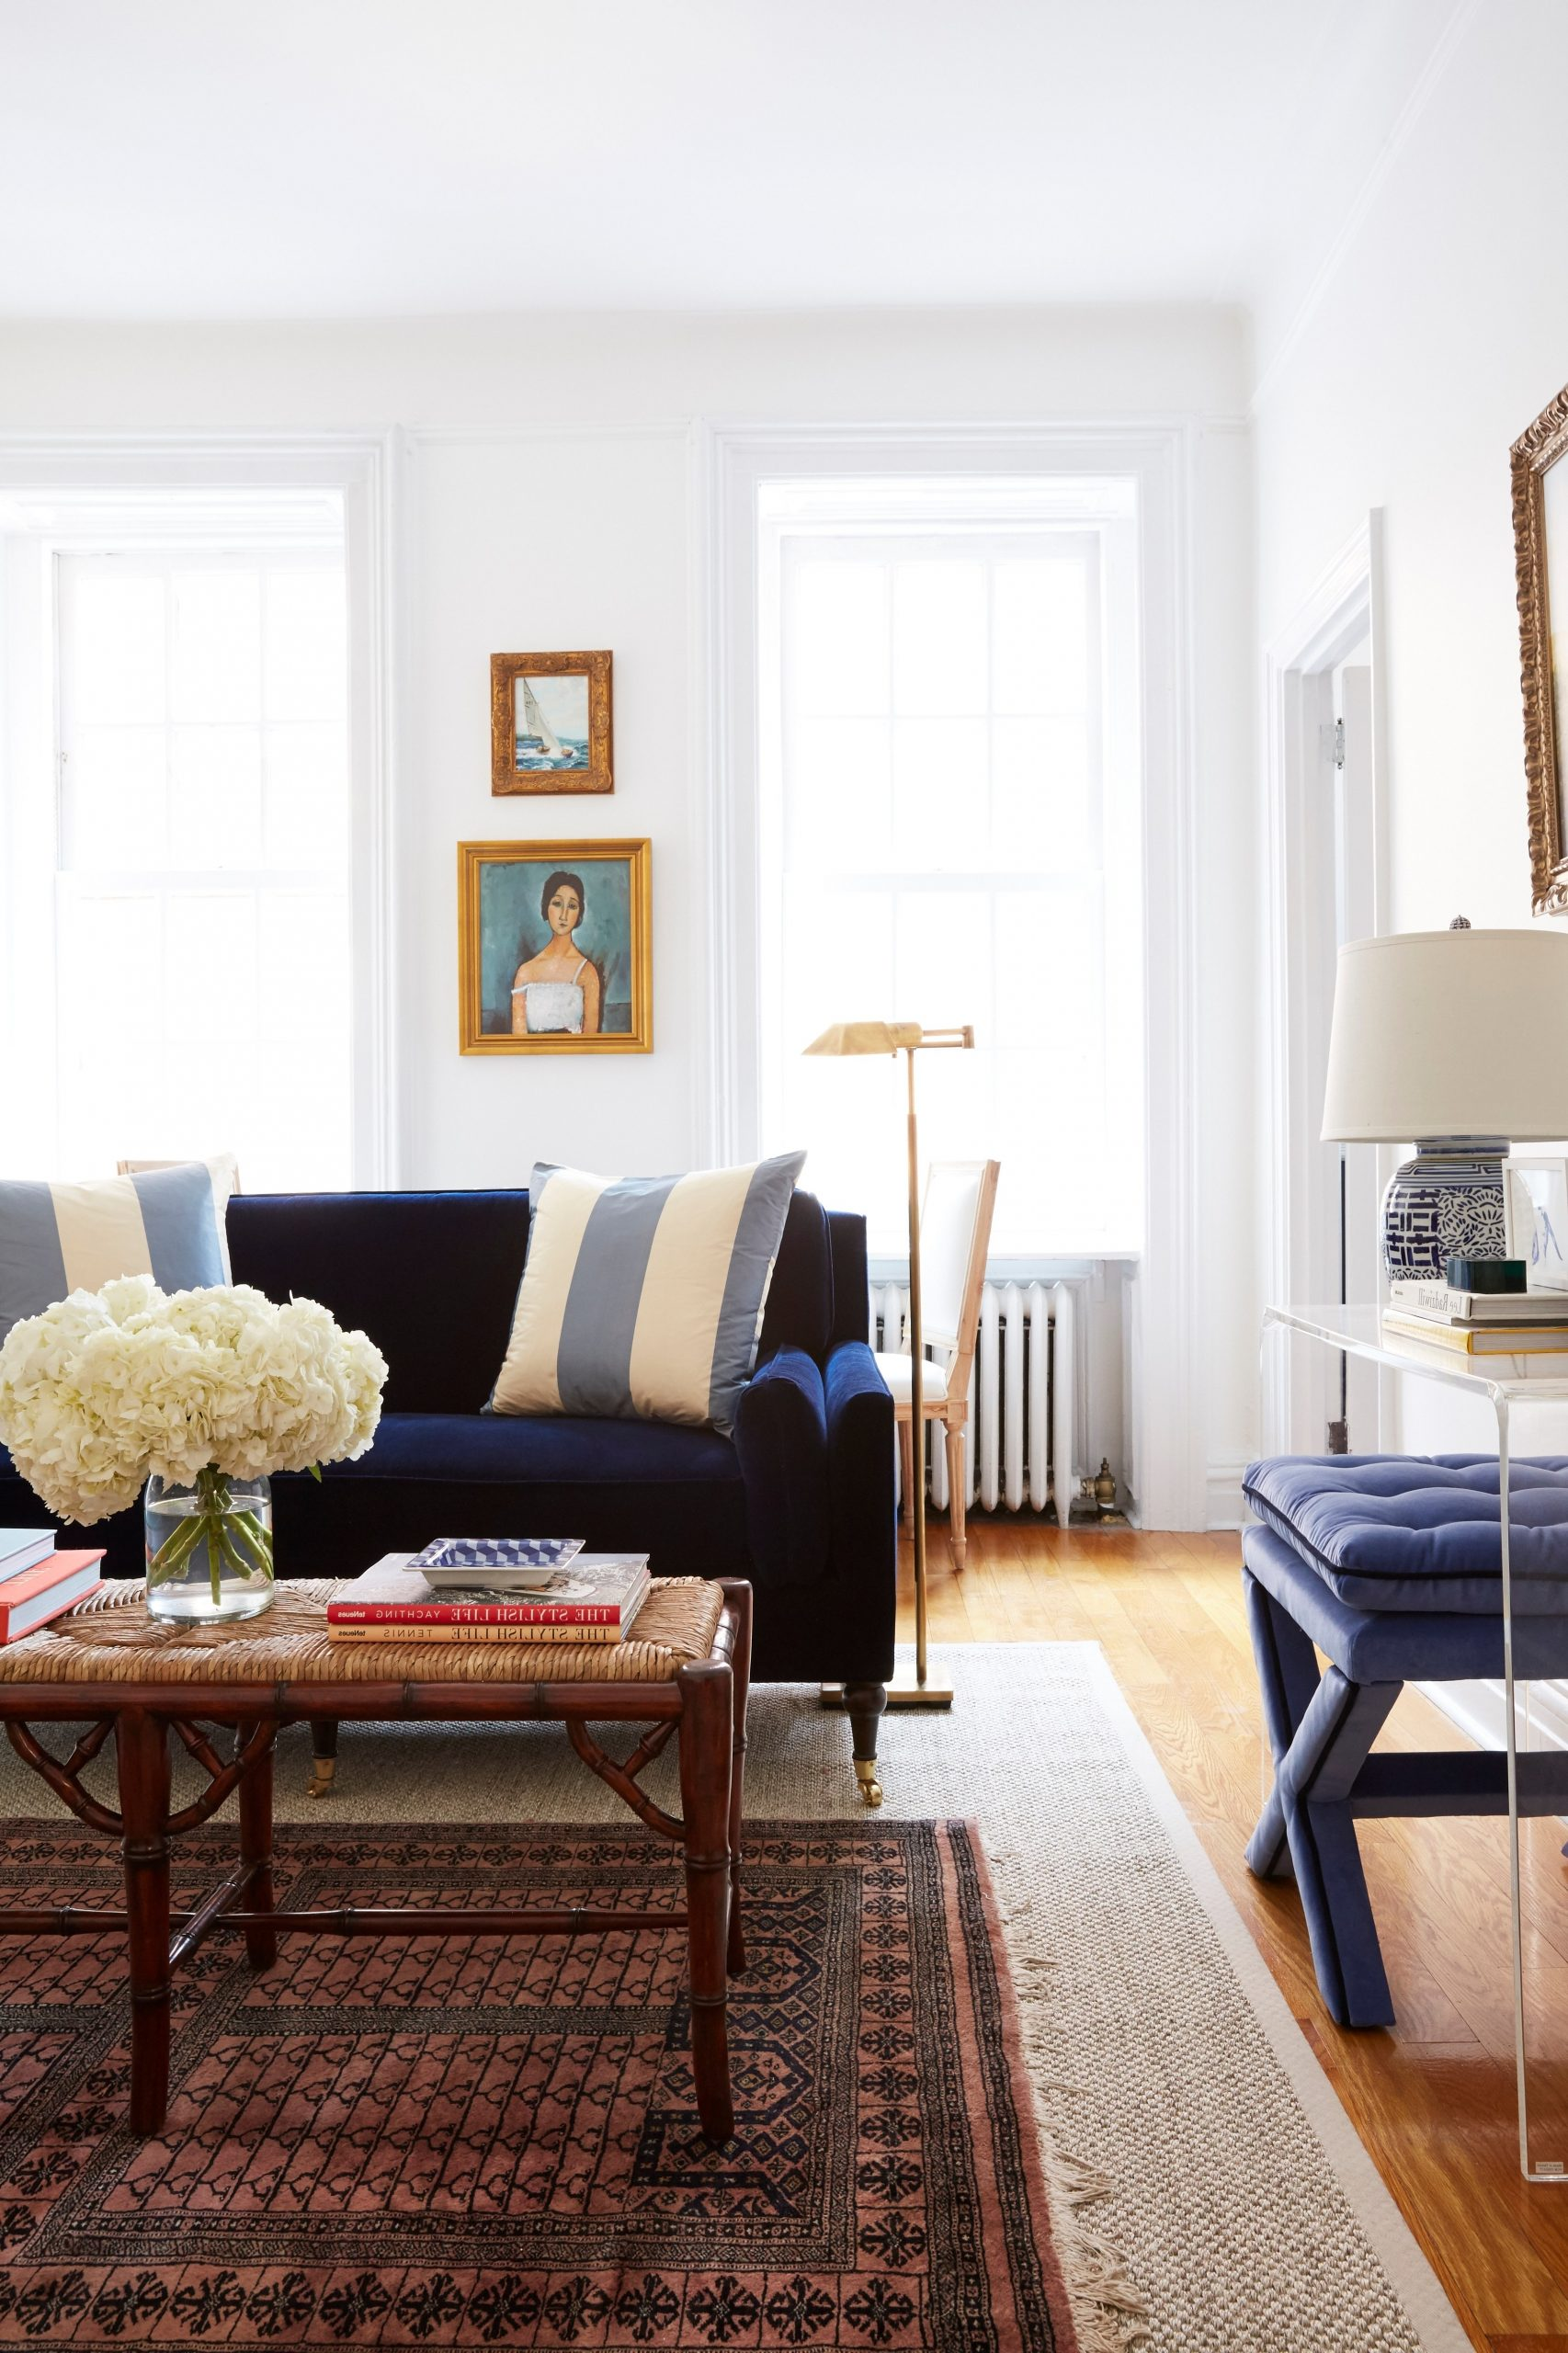 8 Small Living Room Ideas That Will Maximize Your Space 10+ Architectural Digest Small Living Room Ideas